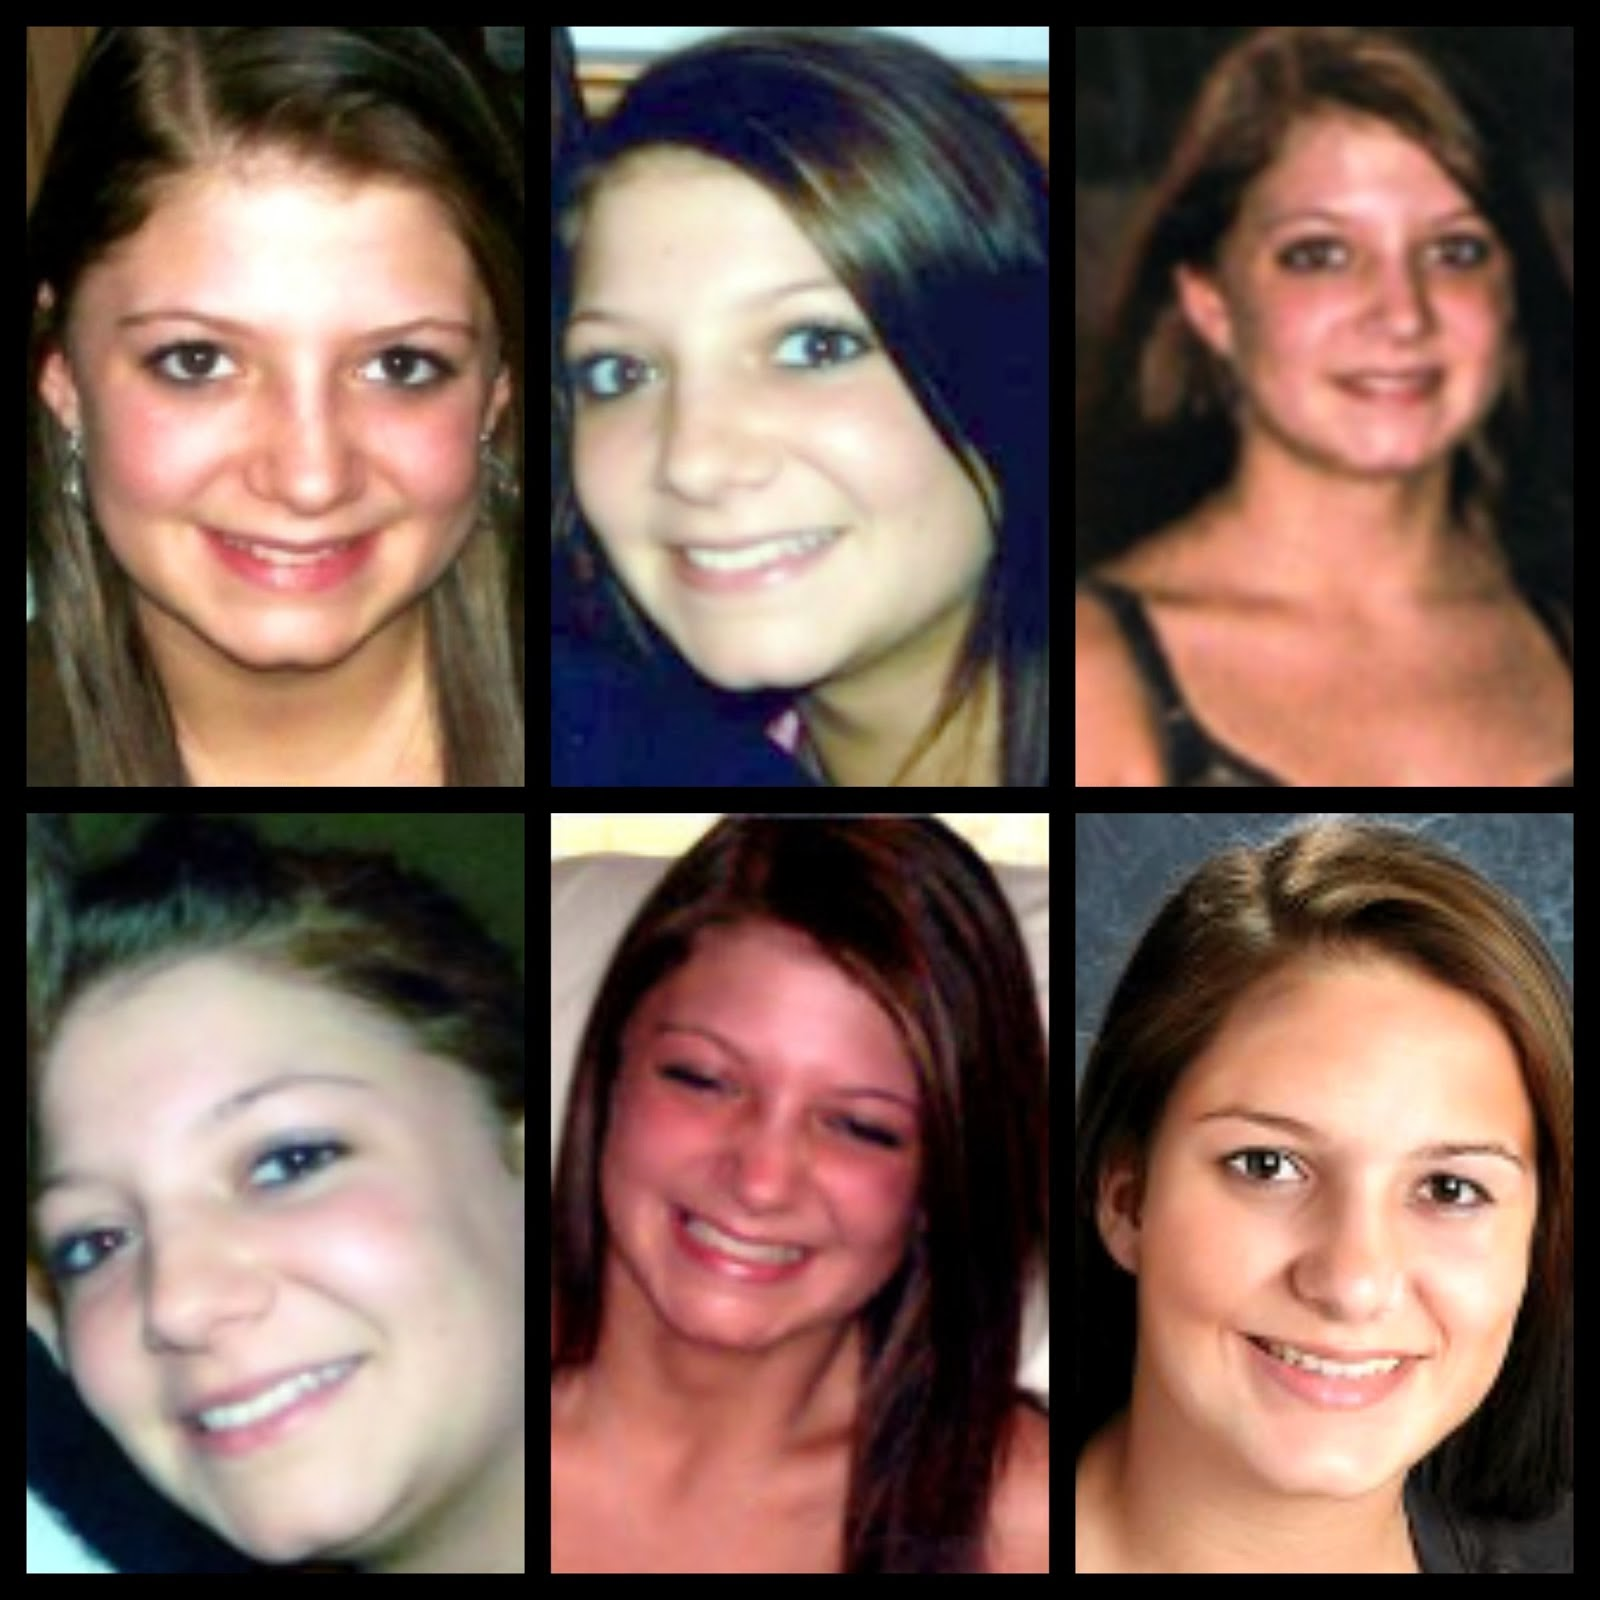 kayla berg vanishes in the summer of 2009 leaving her family paralyzed with worry